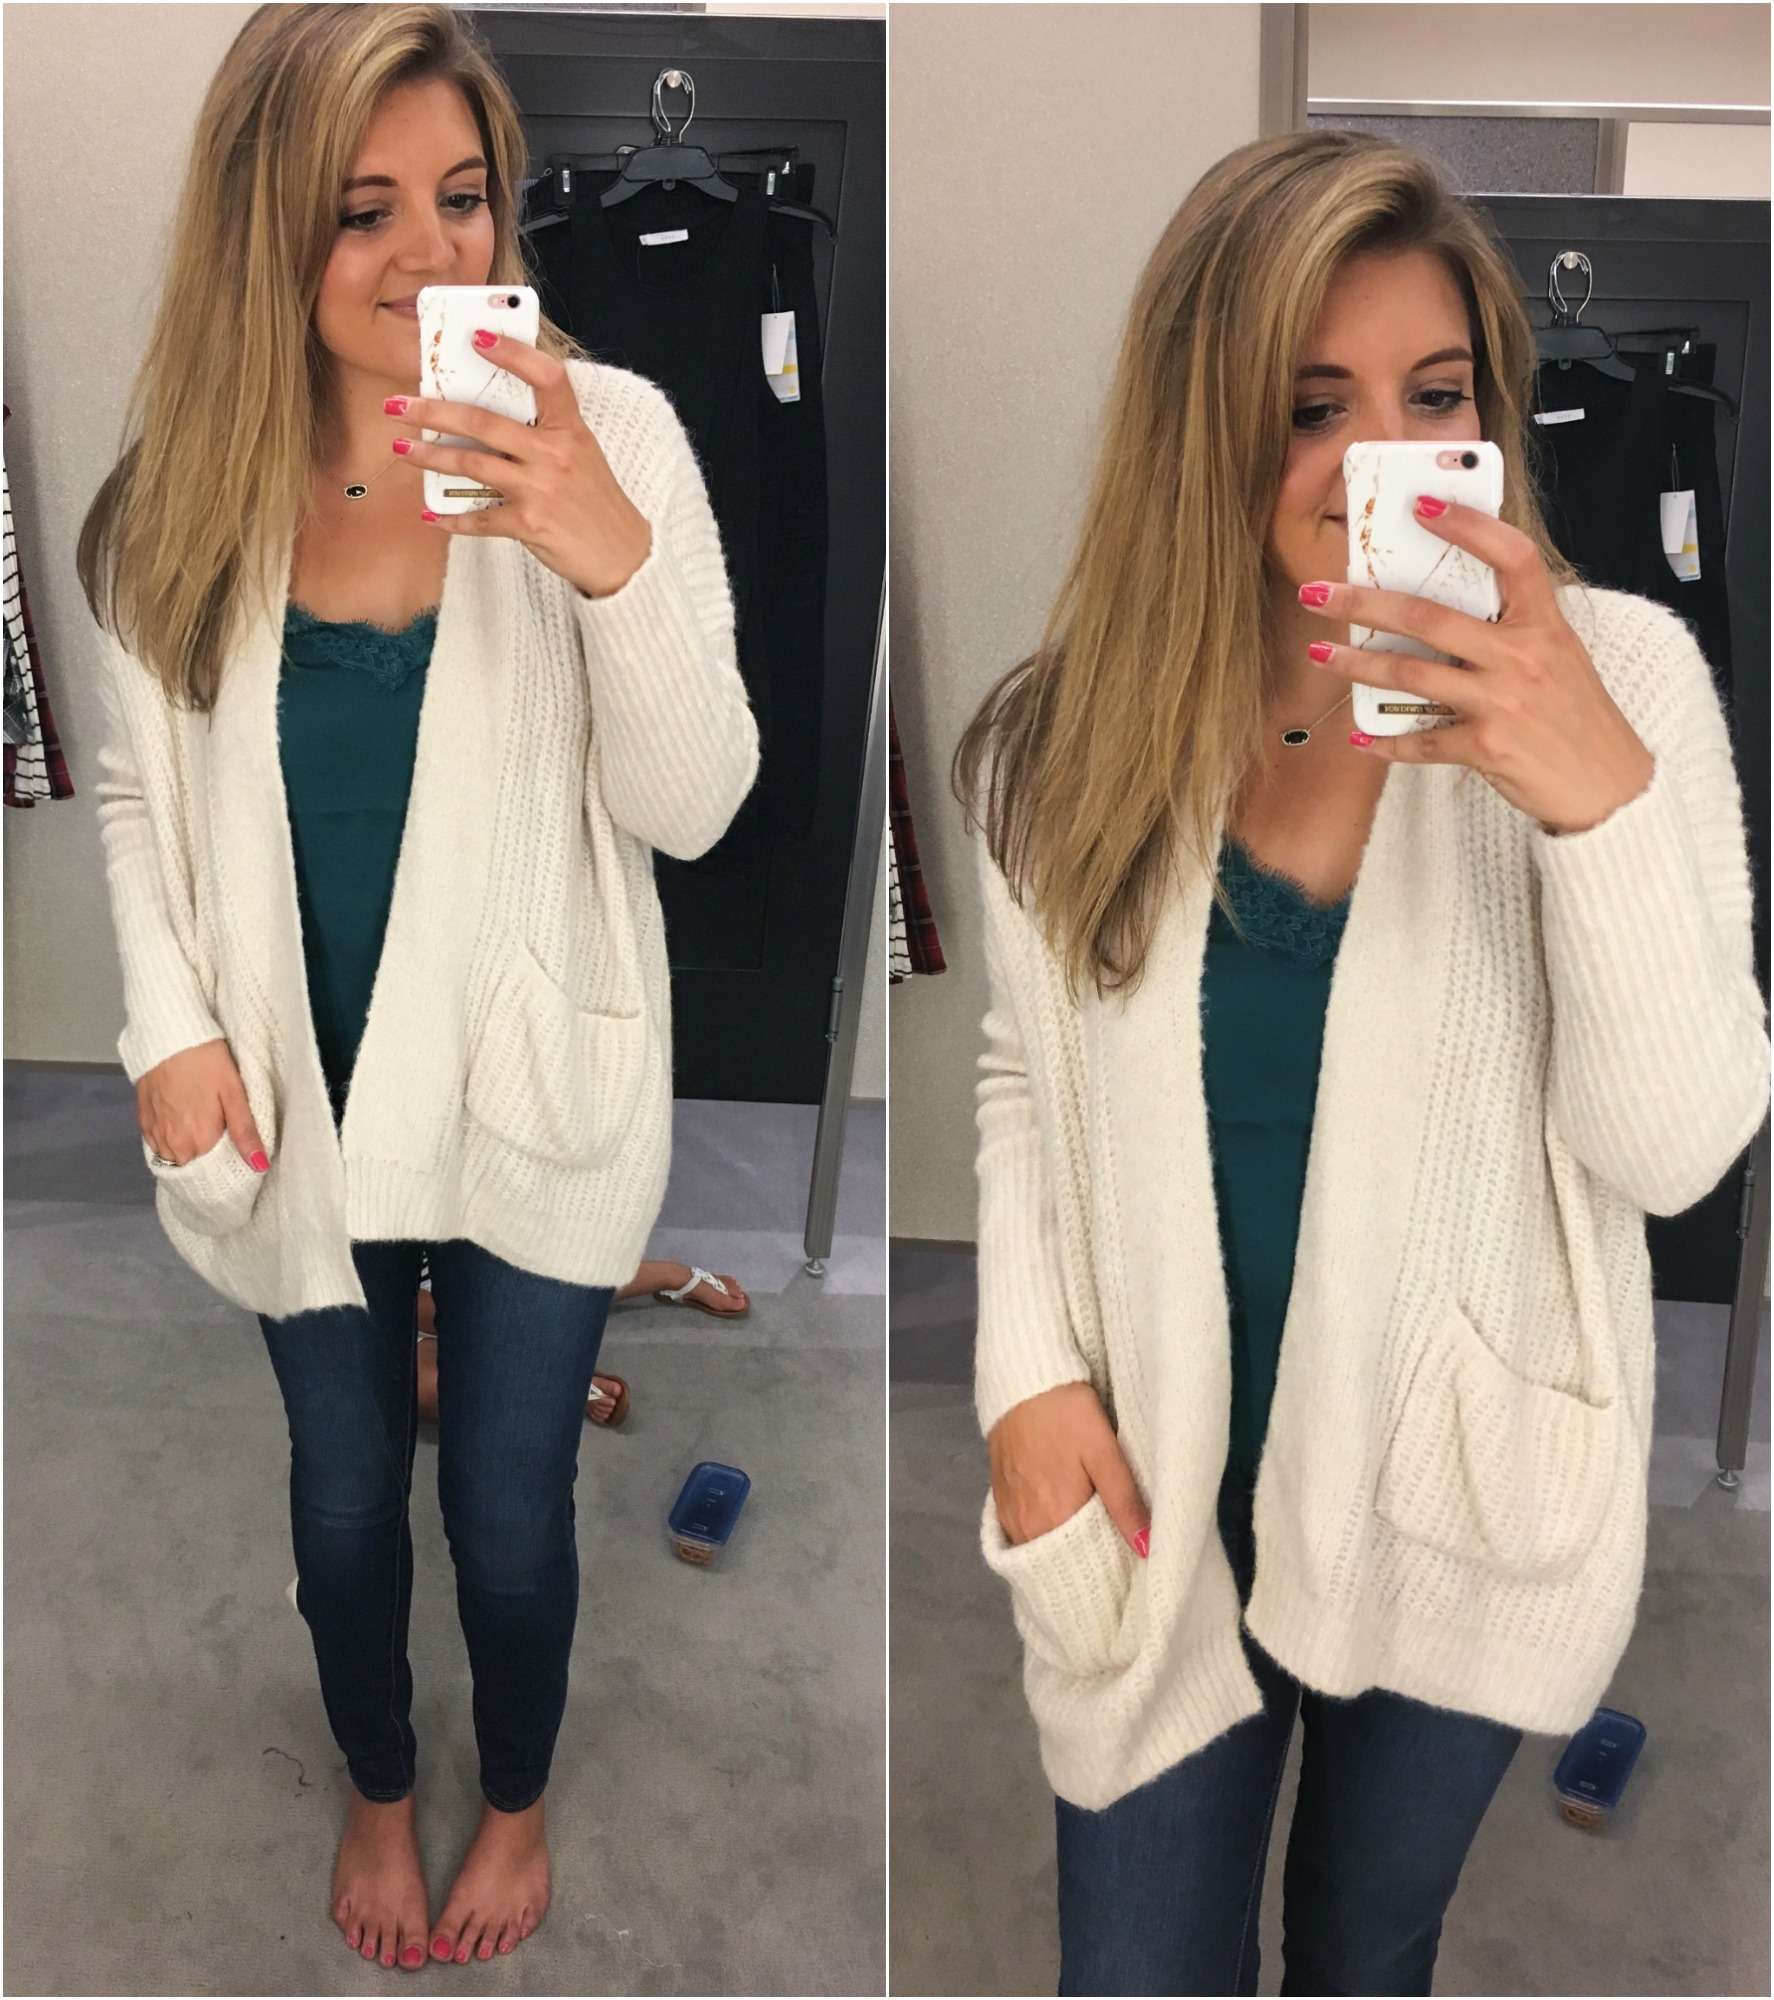 nordstrom anniversary sale 2017 reviews - click through for reviews of over 25 items from the sale! | bylaurenm.com